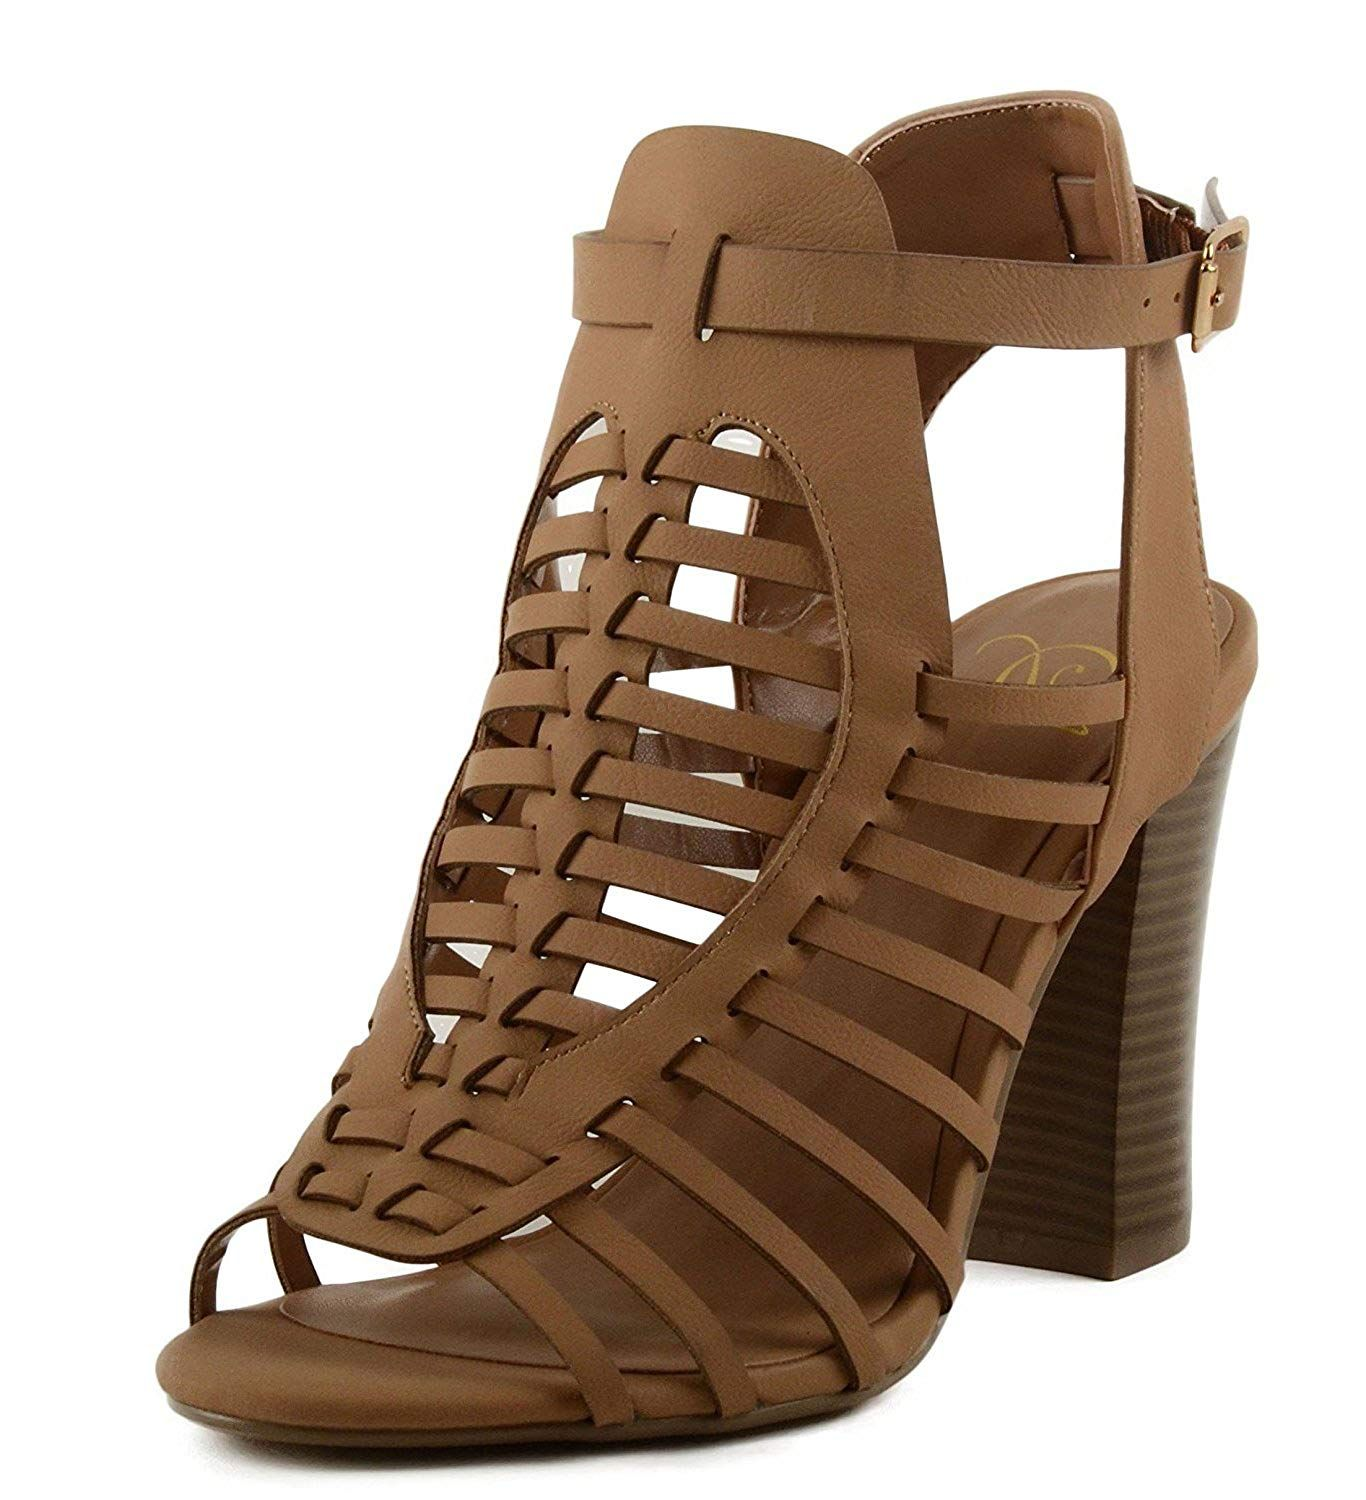 2a12a4dc92f Delicious Women s Cutout Buckle Stacked Chunky Heel Bootie. This ankle  bootie from Delicious features an